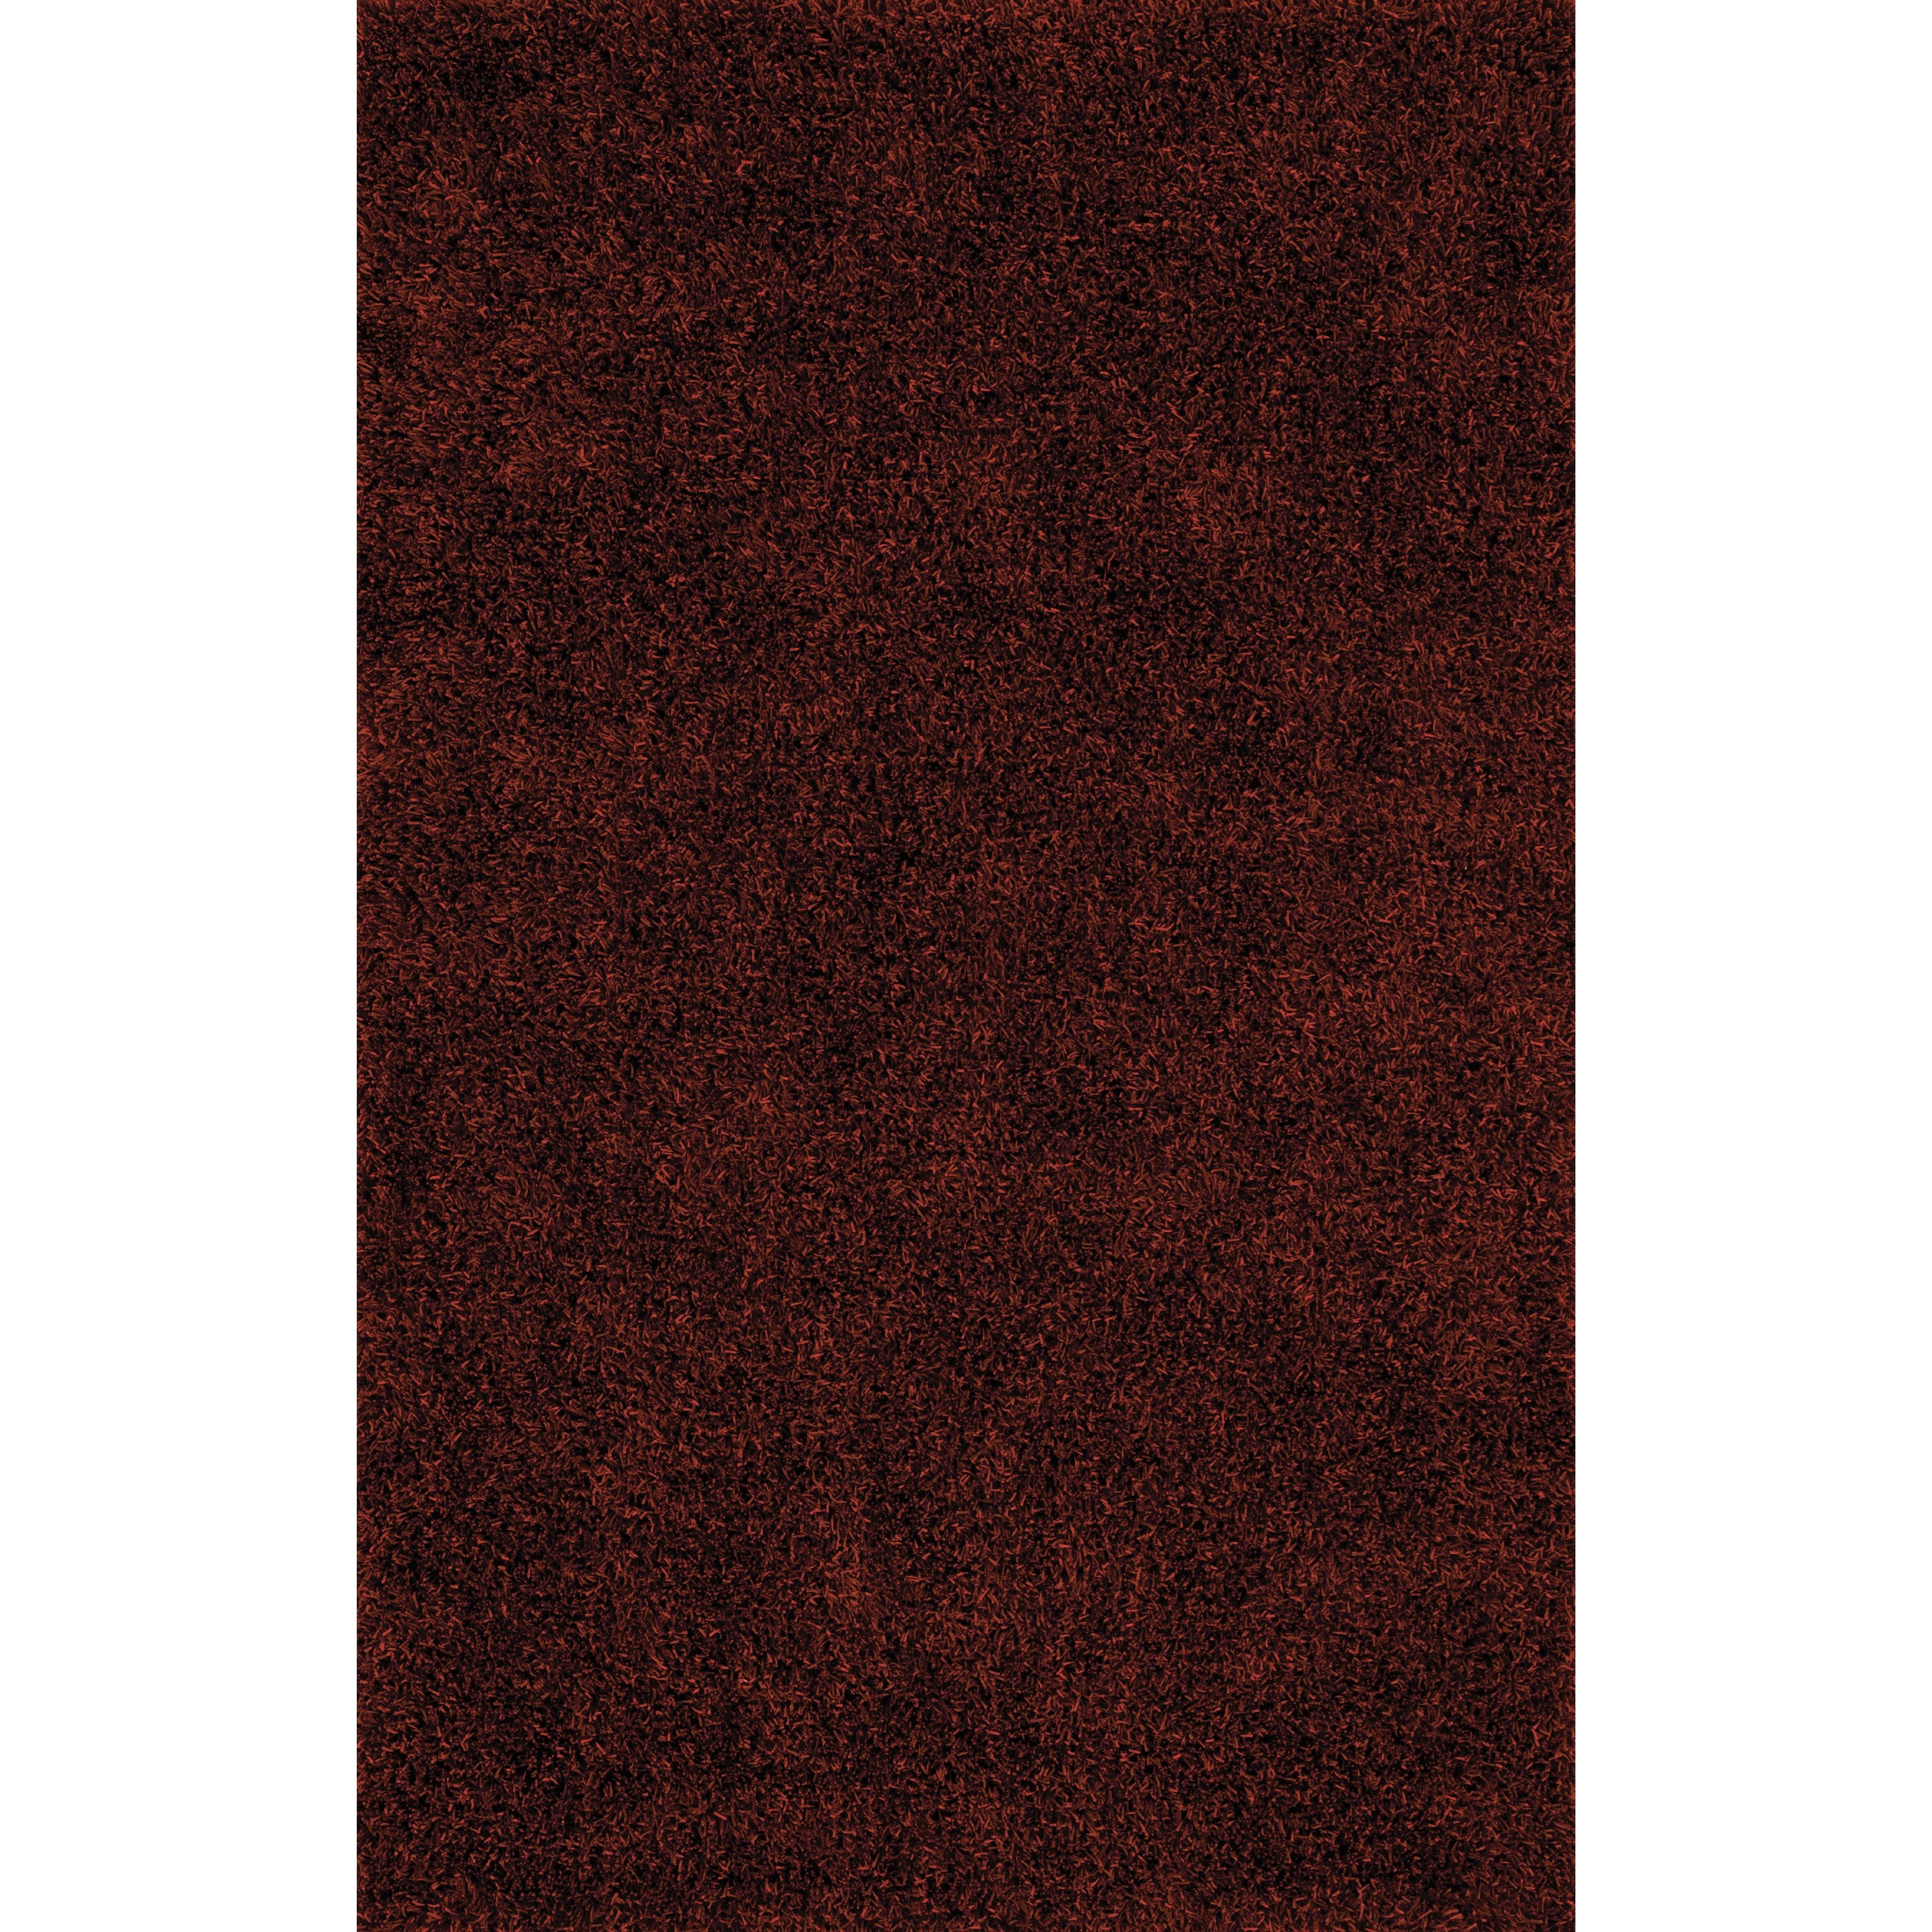 Illusions Paprika 9'X13' Rug by Dalyn at Jacksonville Furniture Mart